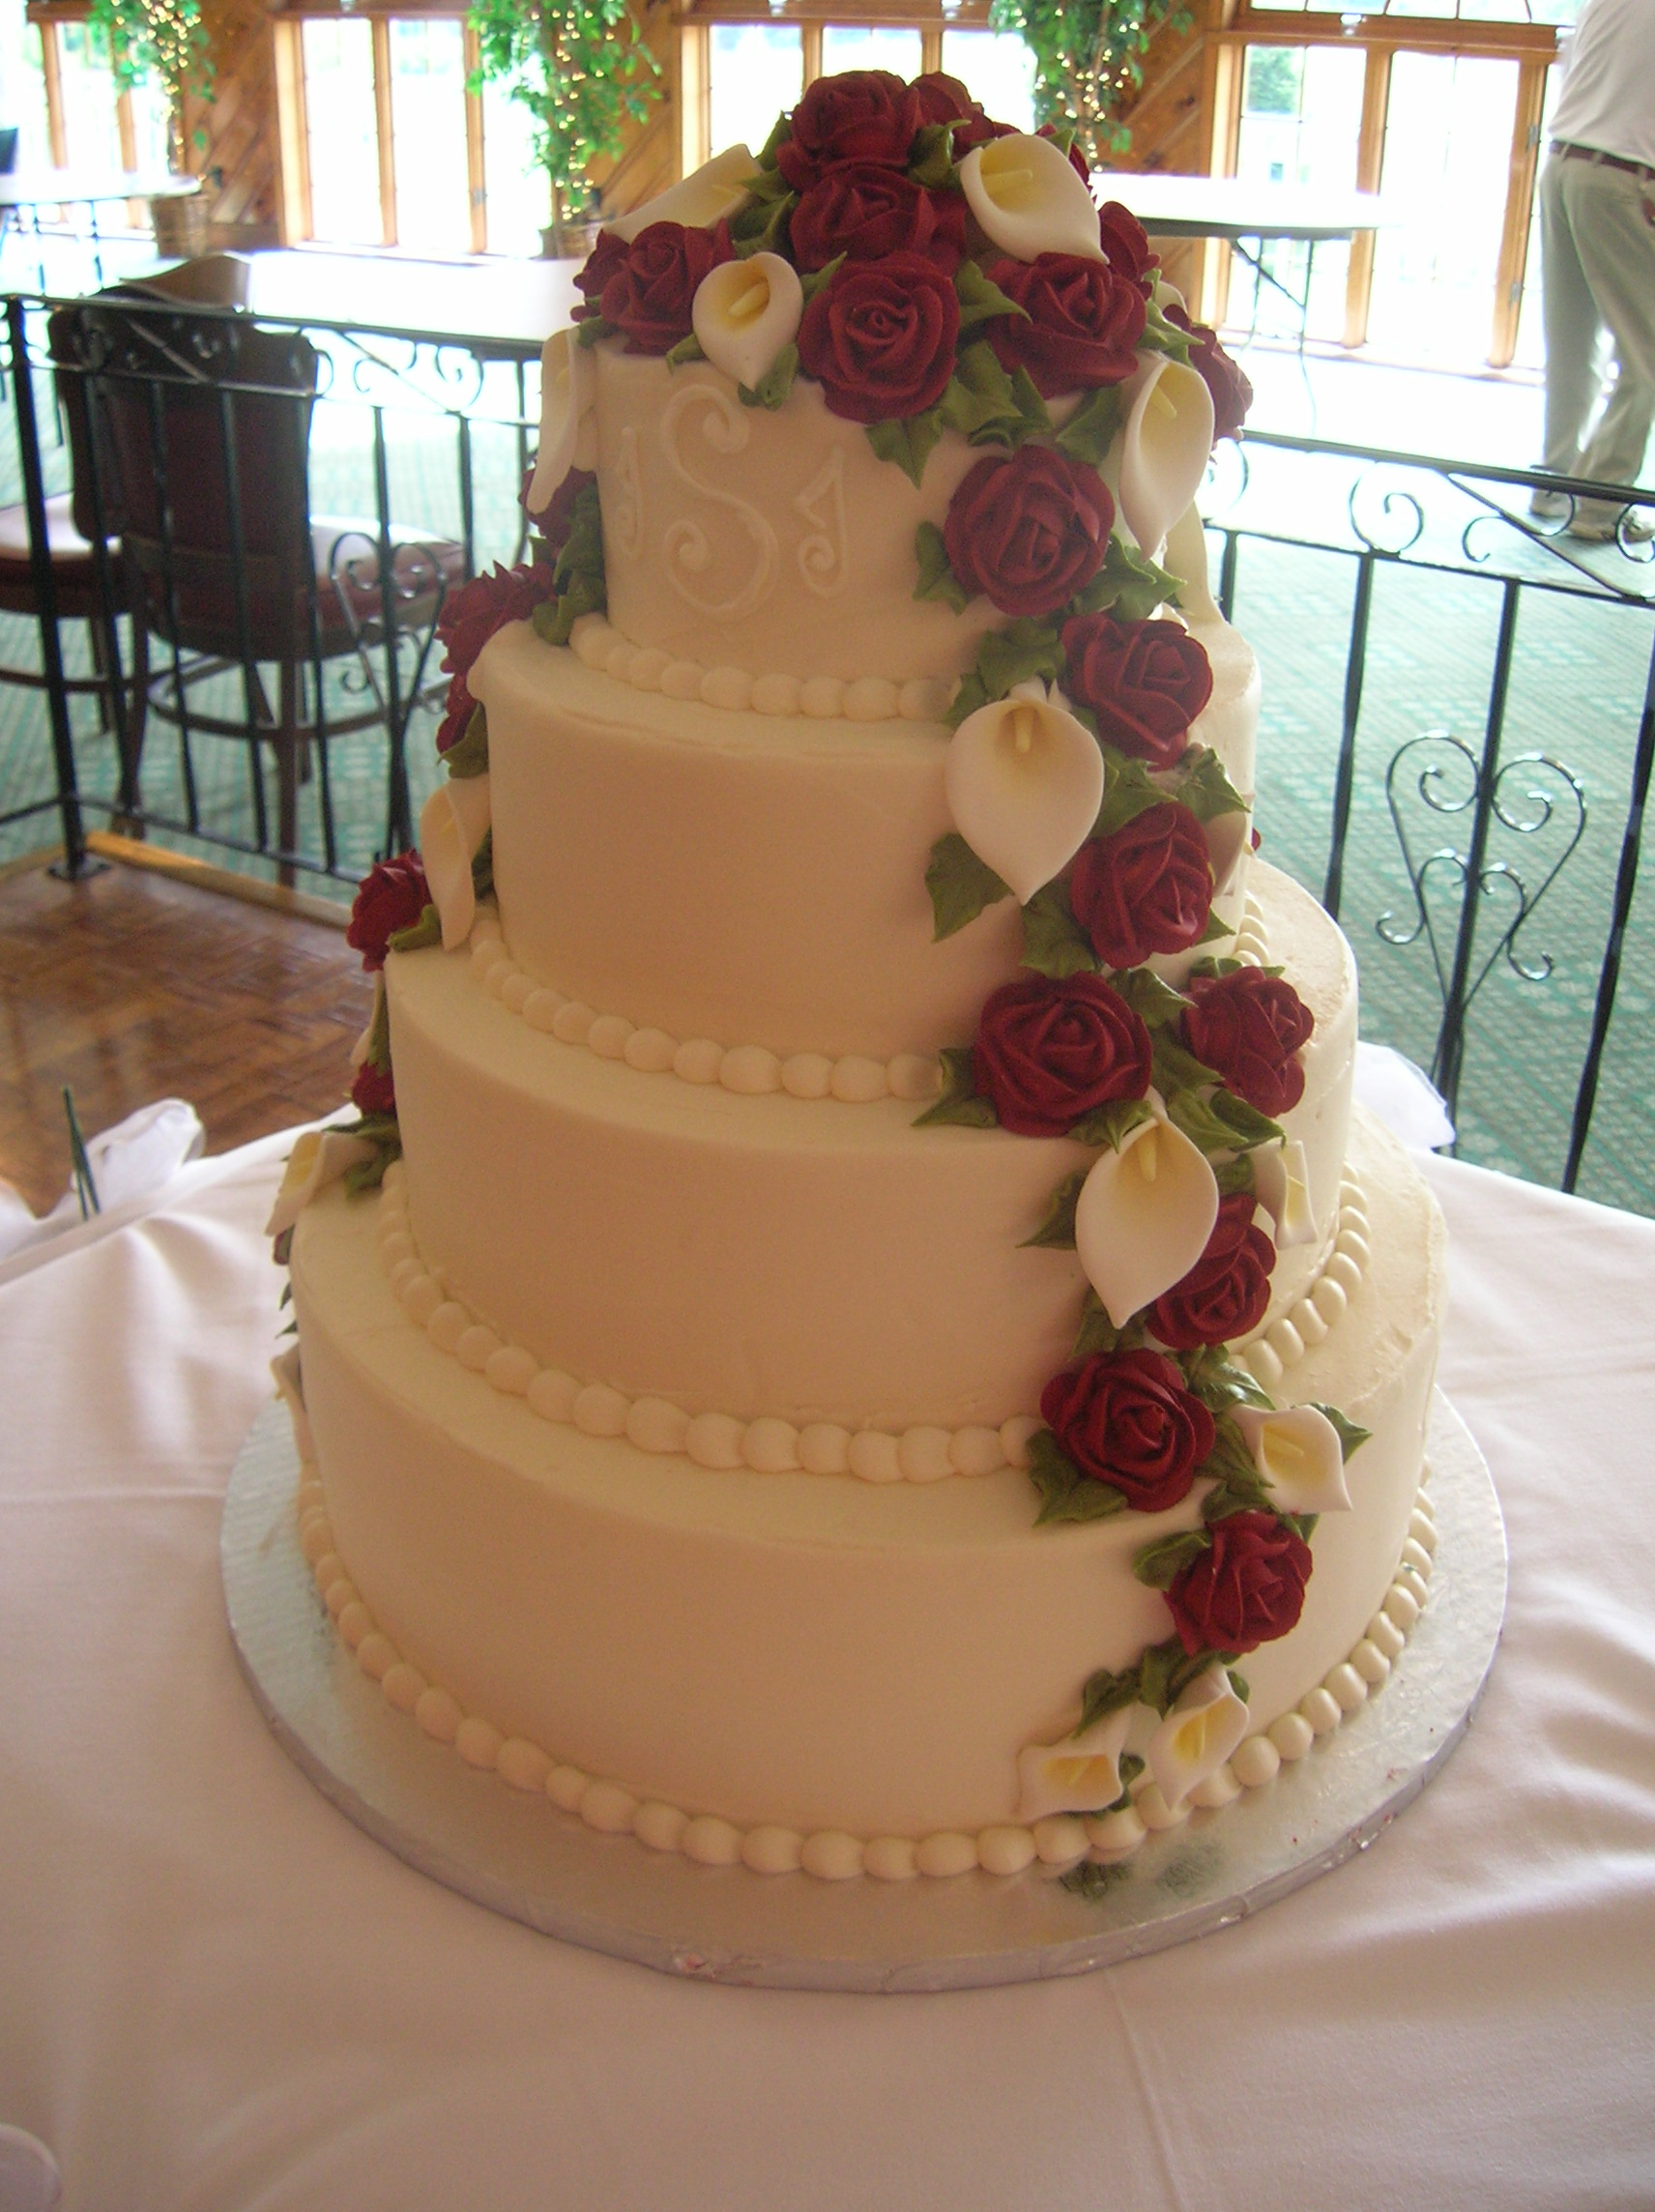 wedding cakes with roses and calla lilies wedding cakes with calla lilies and roses 5000 simple 26105